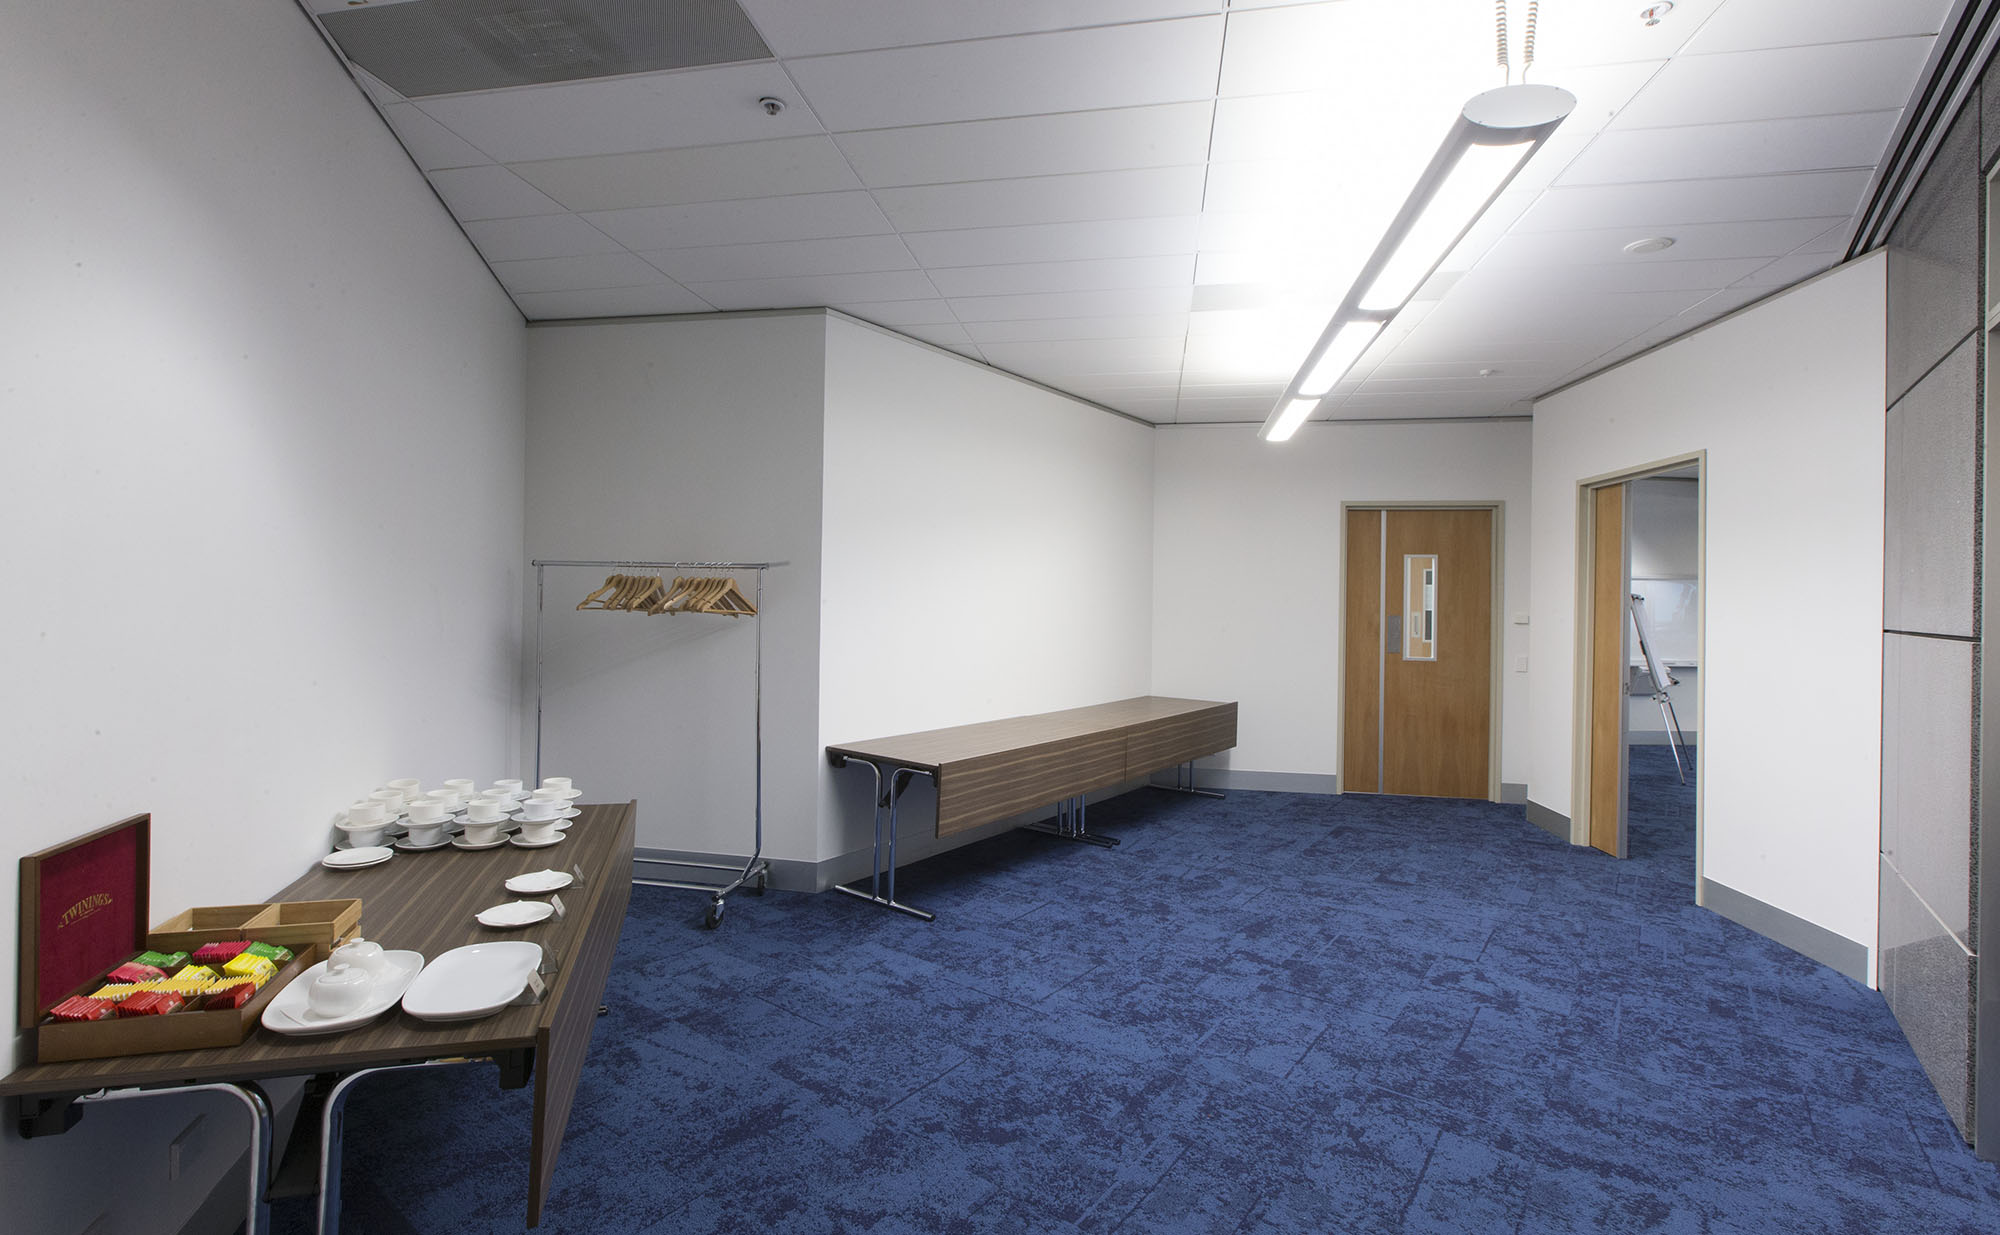 Large space with blue carpet featuring two tables against the wall – one containing tea cups and teabags